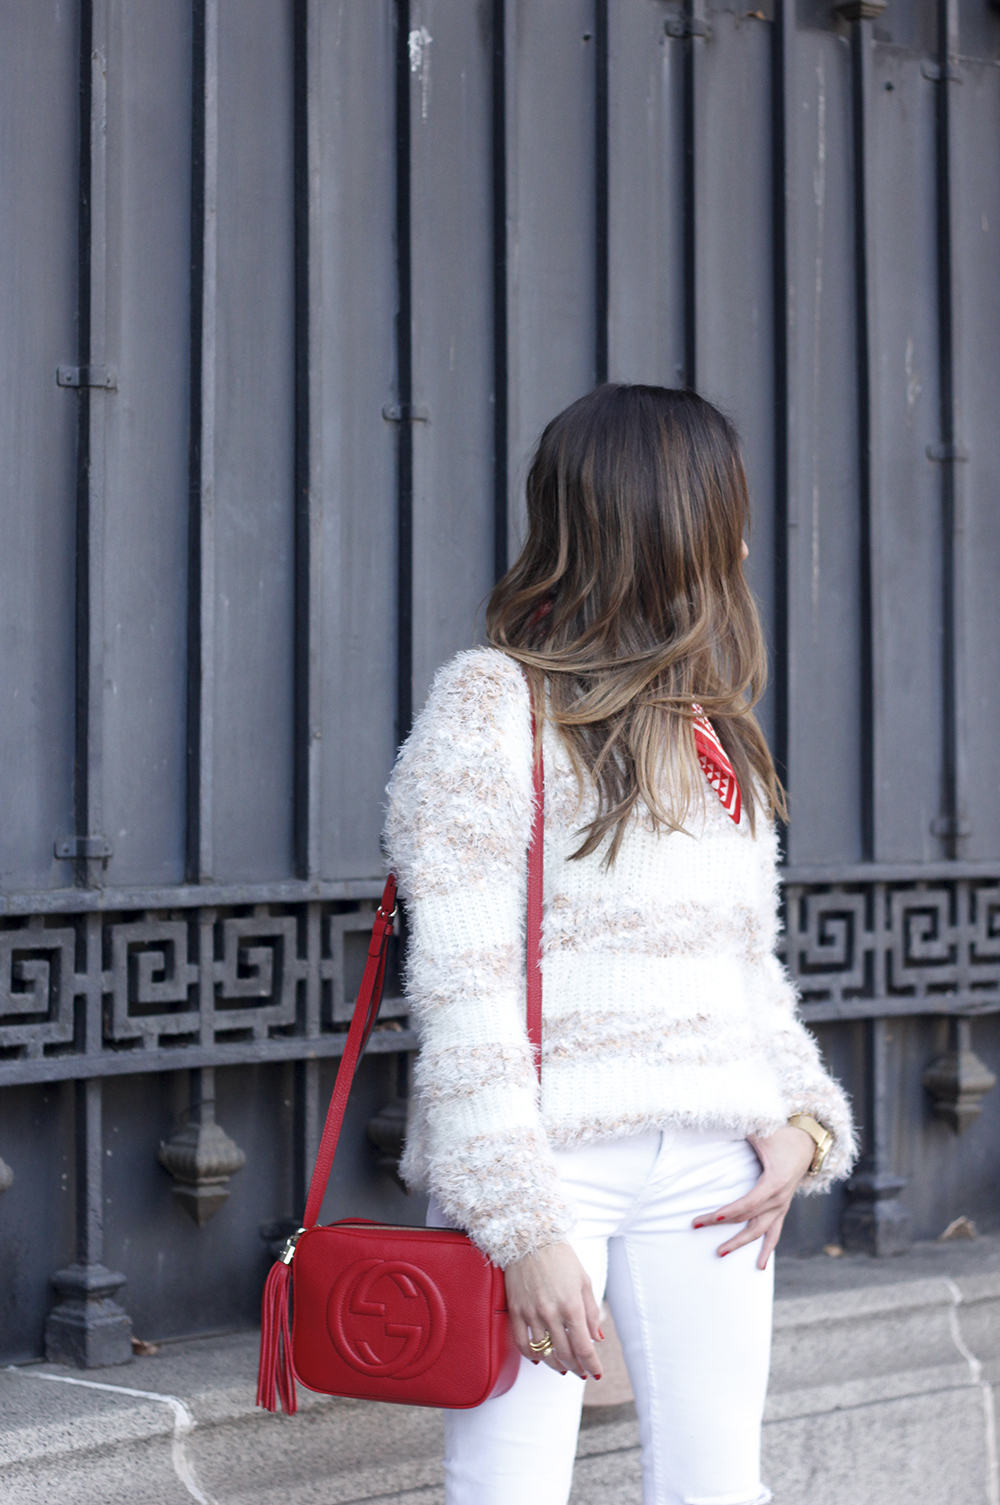 df60298fdb48 ... white outfit touch of red gucci bag primark hat winter outfit 201809